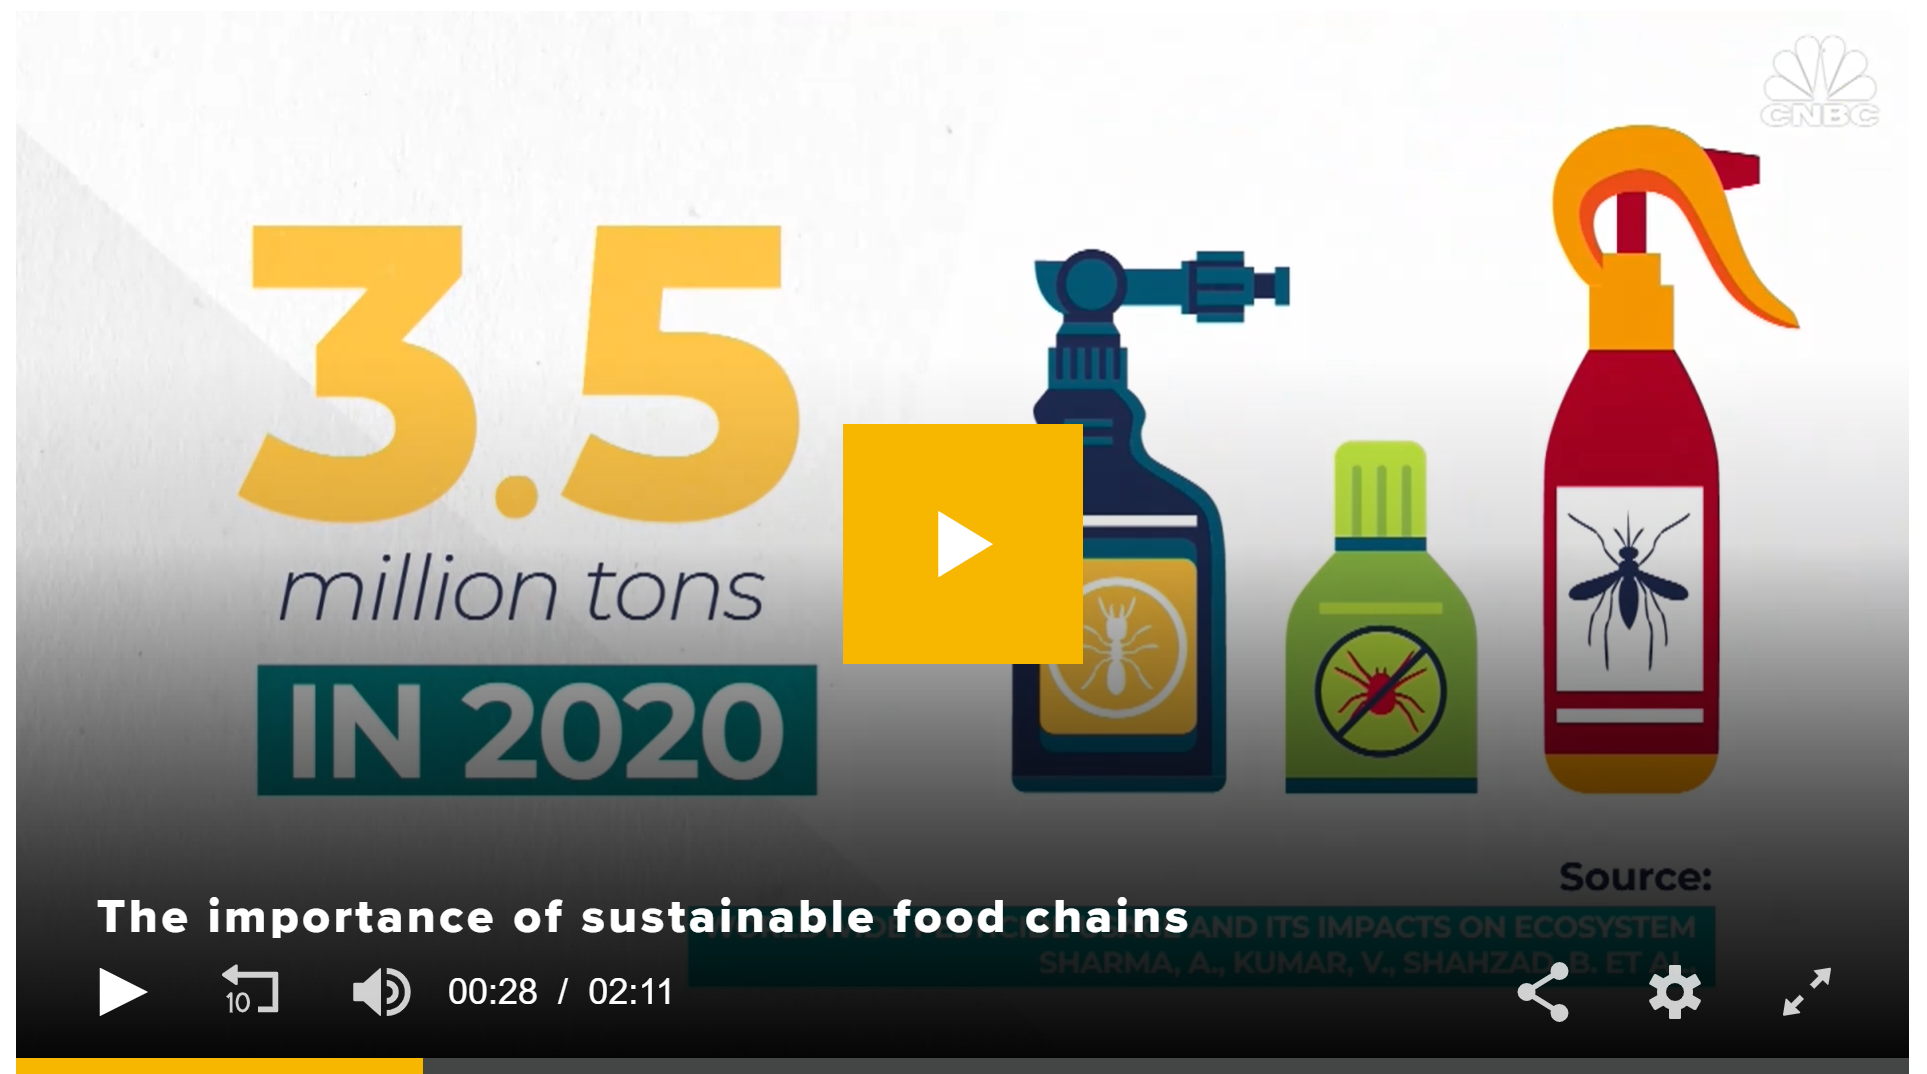 A thumbnail of our linked video: https://www.cnbc.com/video/2020/08/21/the-importance-of-sustainable-food-chains.html